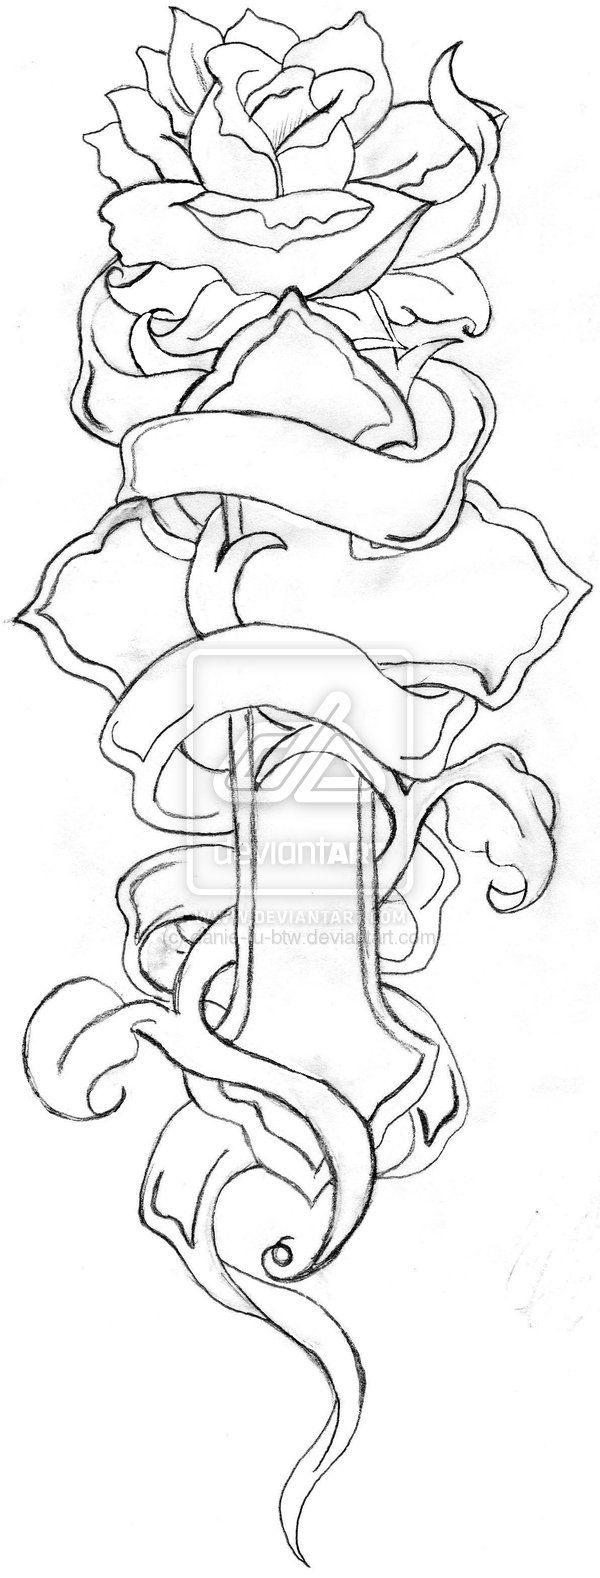 Cross Tattoo Line Drawing : Cross and rose line drawing by danie ru btw viantart